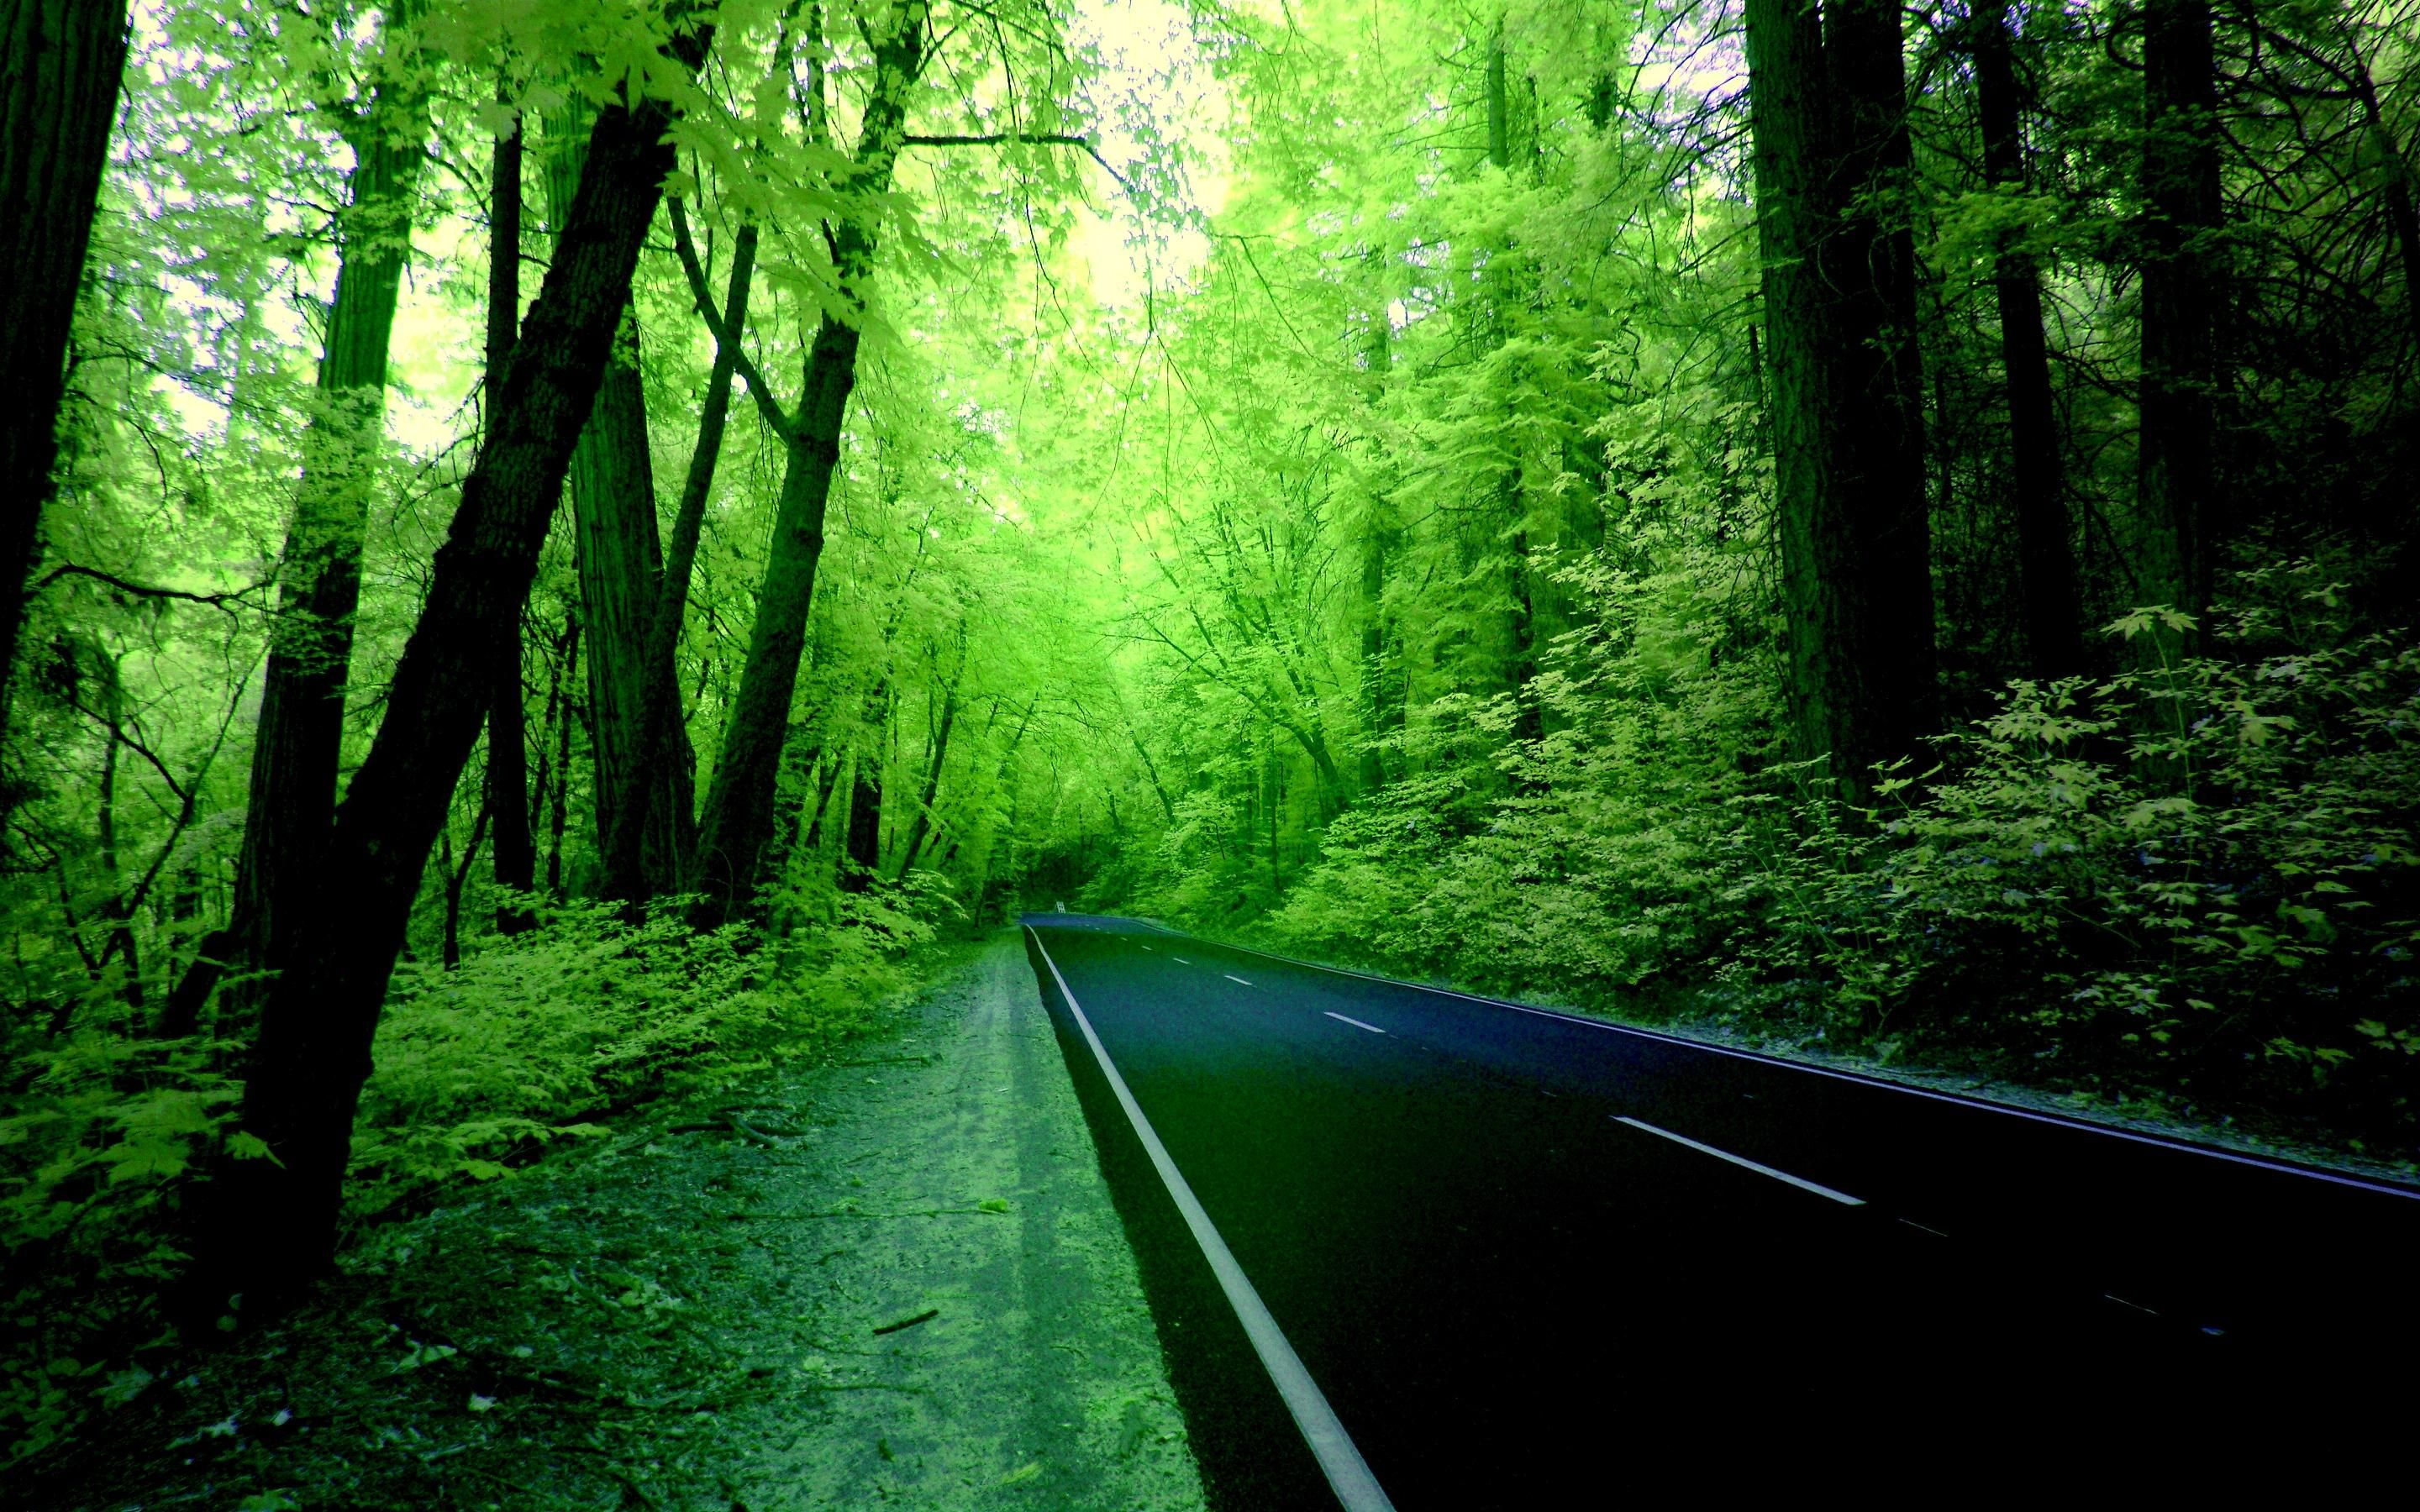 Forests Huge Nature Forests Green Trees Landscape Greenery